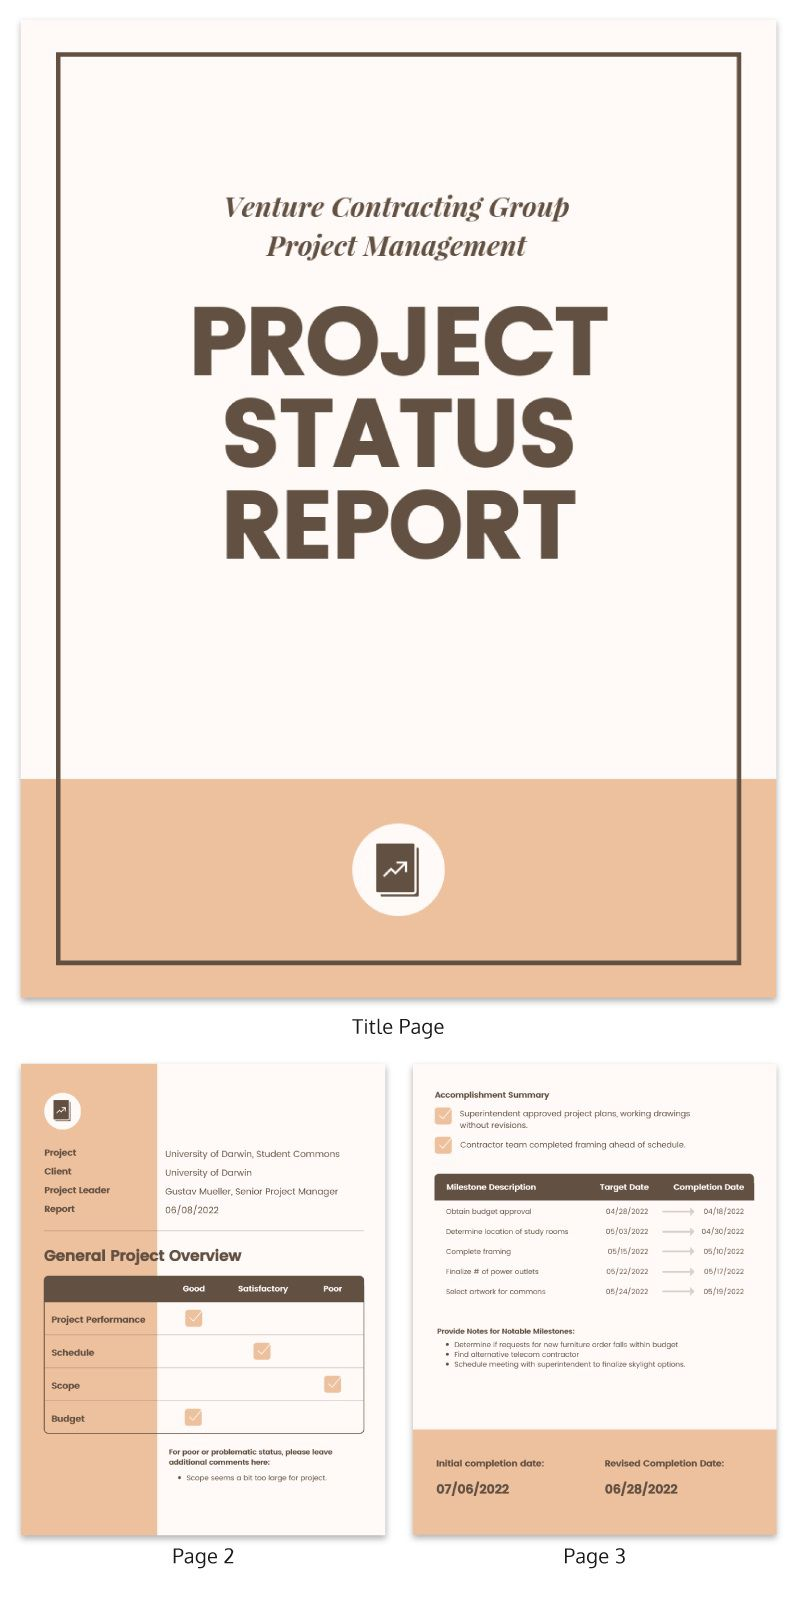 007 Top Project Management Report Template Free High Resolution  Weekly StatuFull